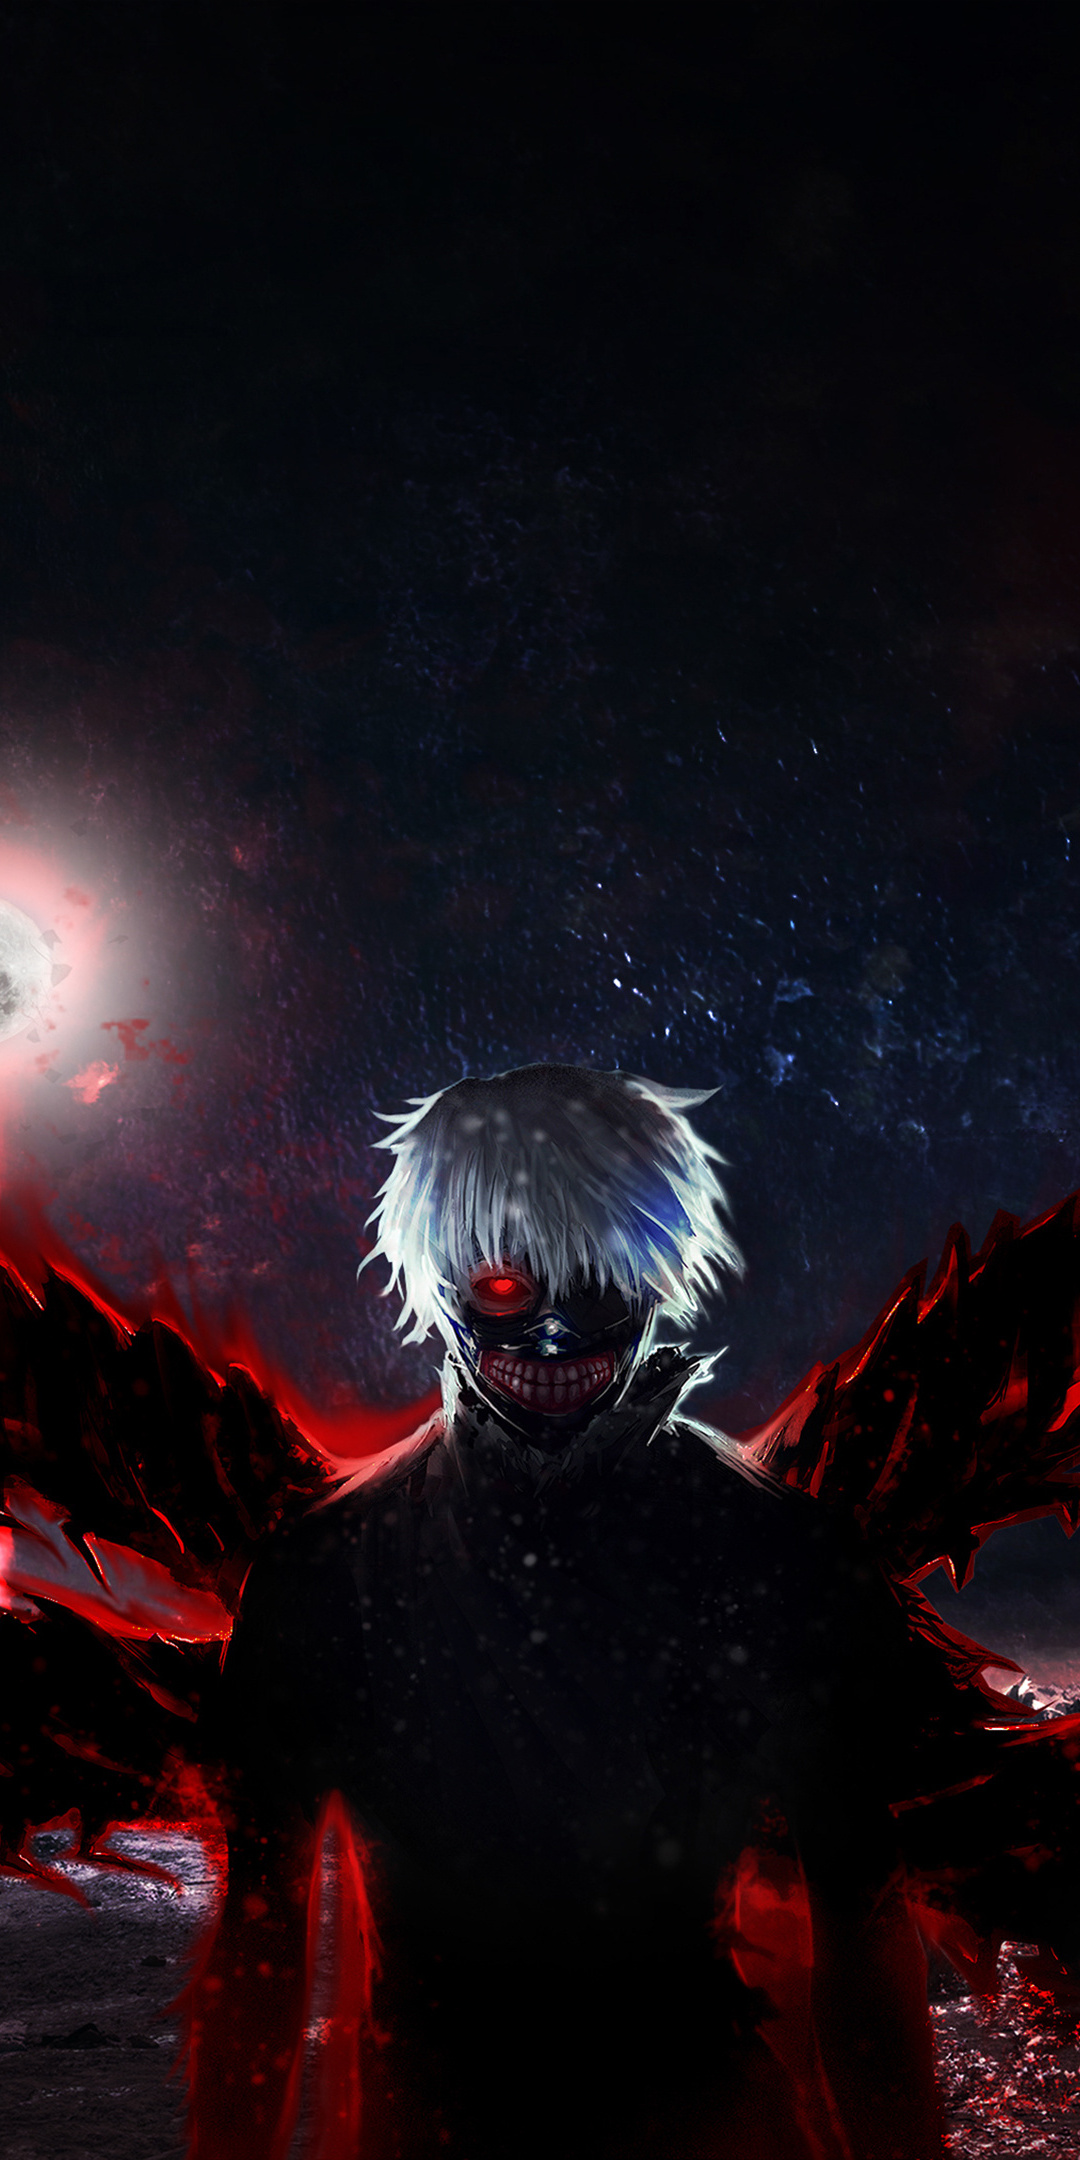 1080x2160 Tokyo Ghoul 4k One Plus 5t Honor 7x Honor View 10 Lg Q6 Hd 4k Wallpapers Images Backgrounds Photos And Pictures